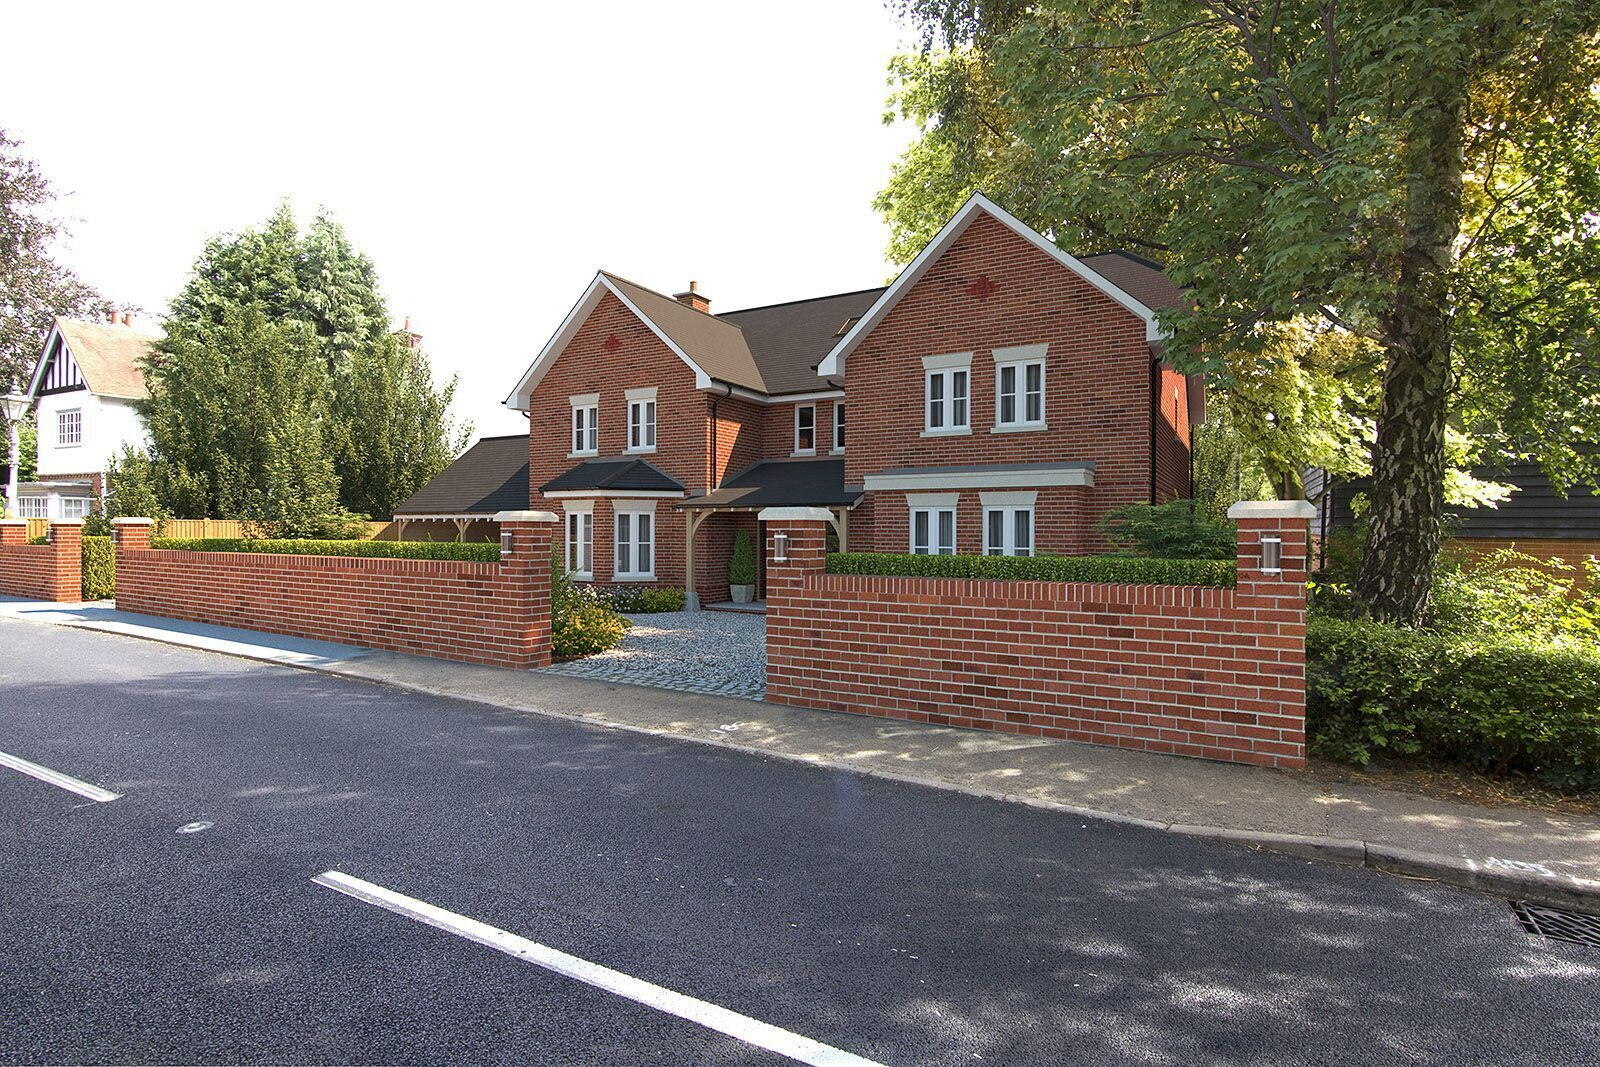 Bellis Homes offers families Much Moore from their new Hertfordshire village homes